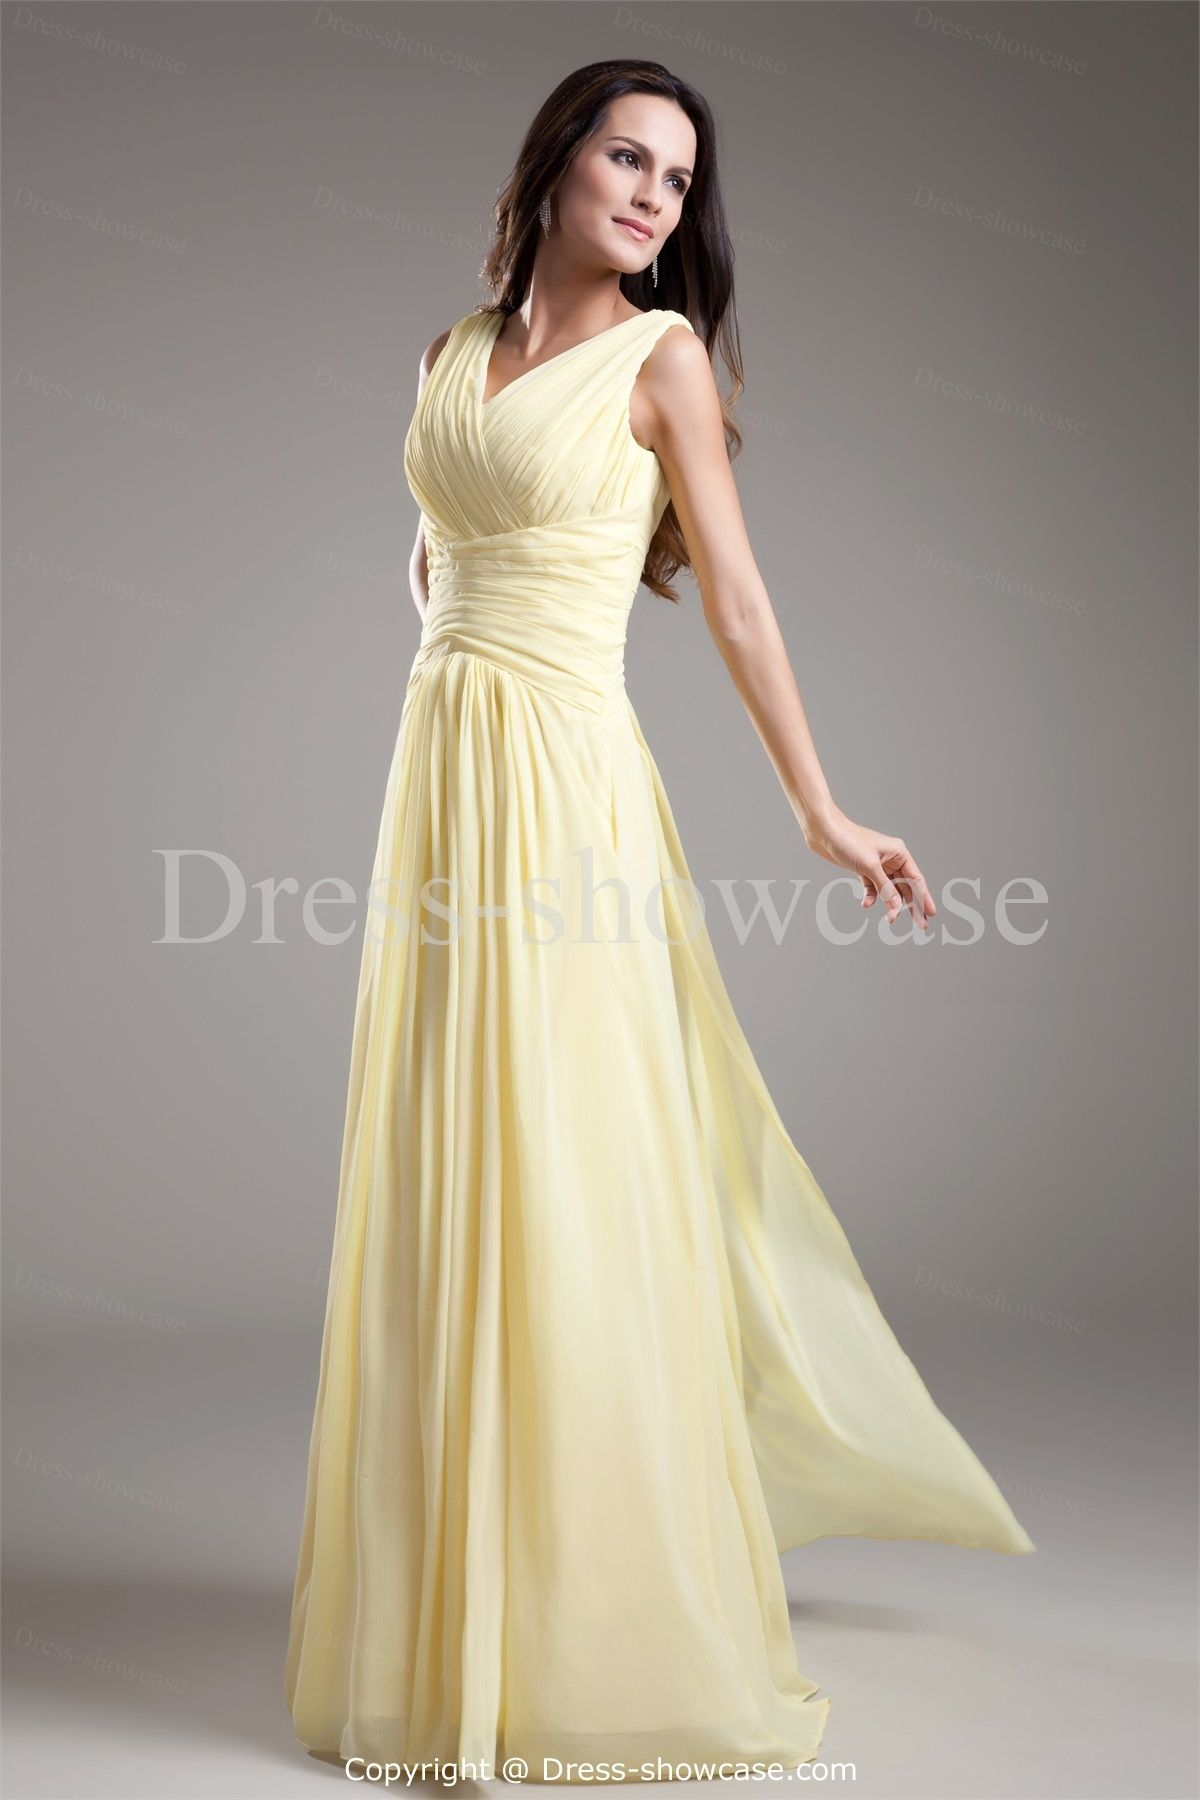 Yellow Bridesmaid Dresses Under 50 | Top 50 Yellow Bridesmaid ...